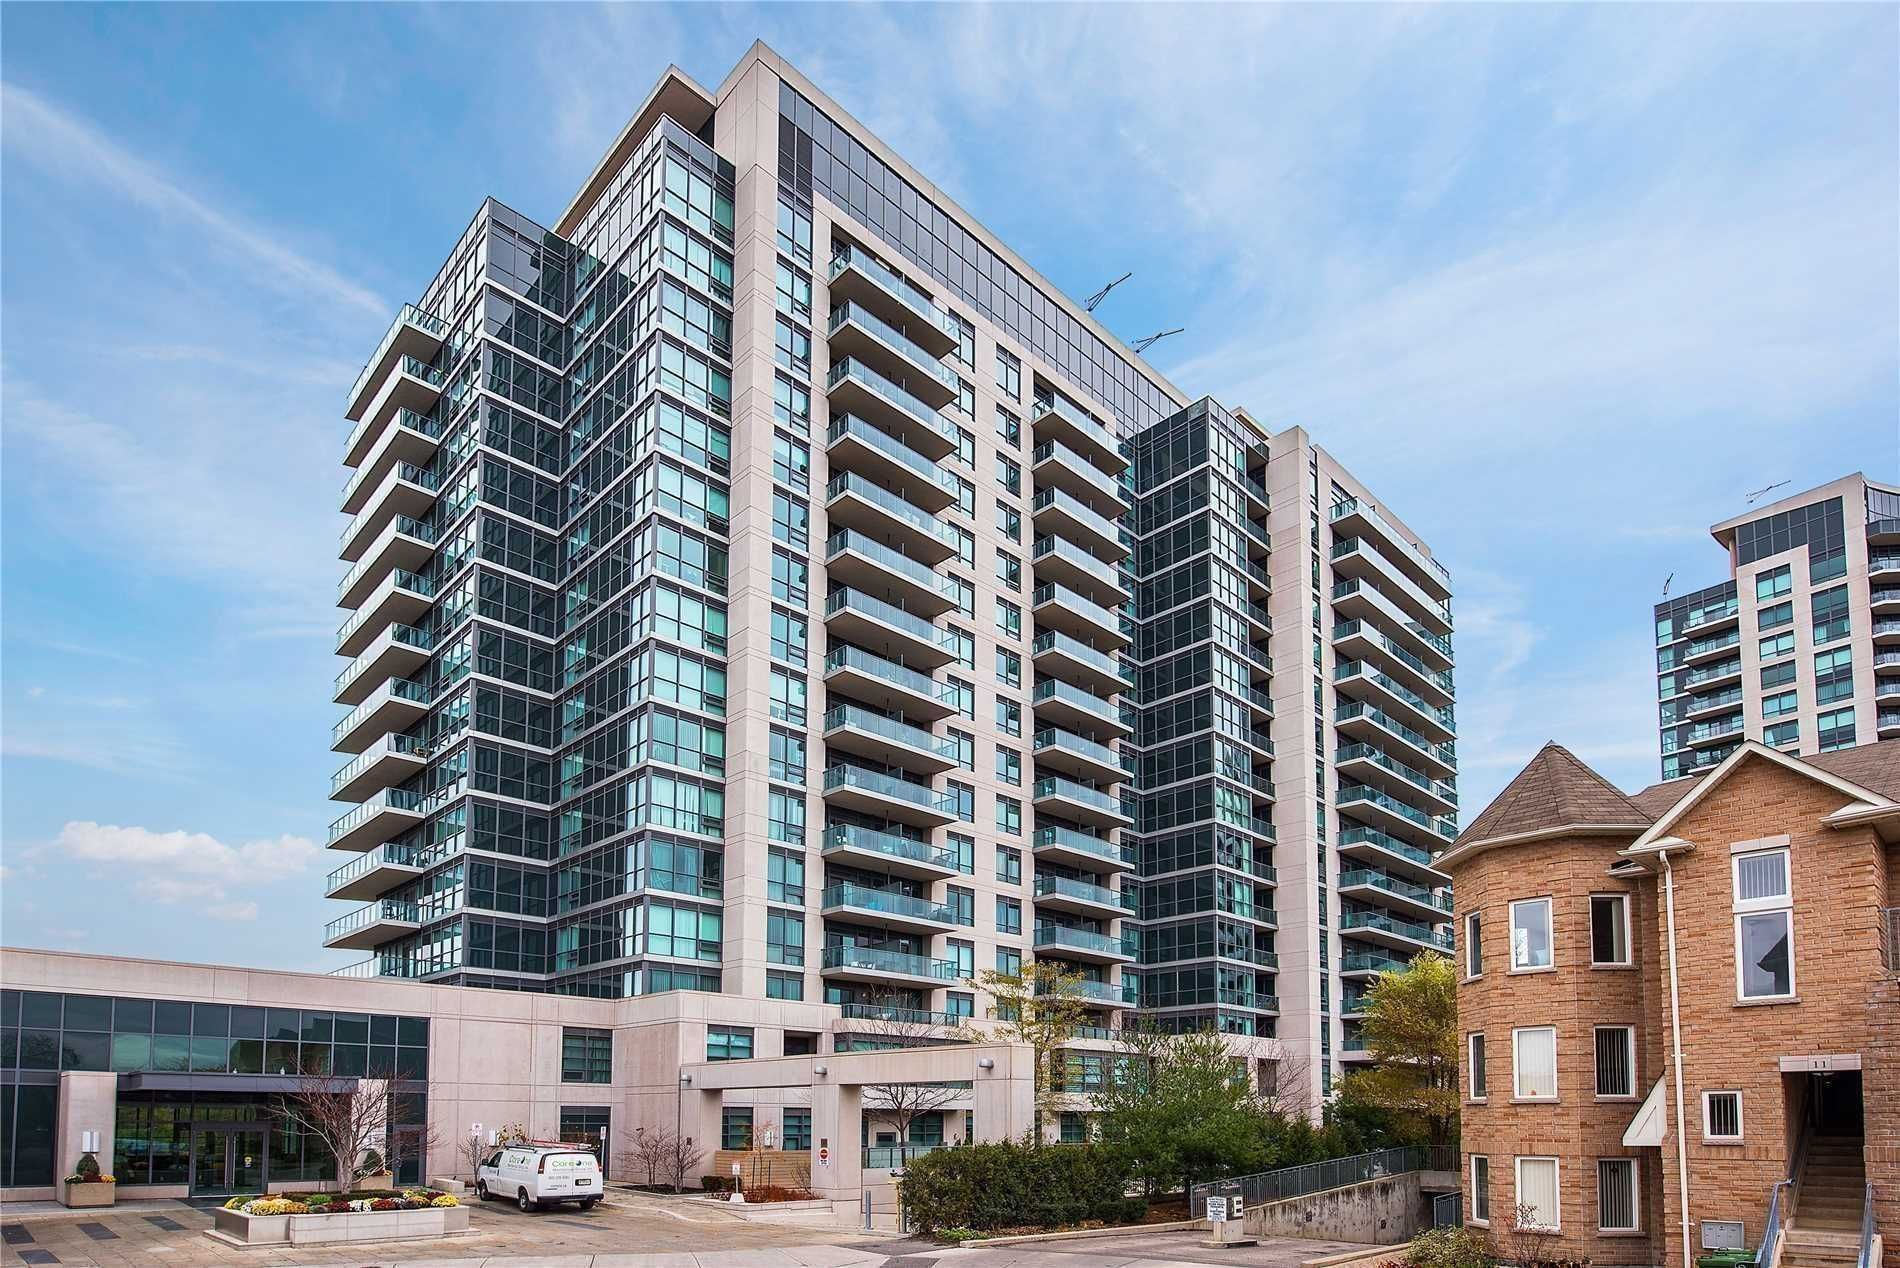 35 Brian Peck Cres, unit Lph27 for rent in Toronto - image #1